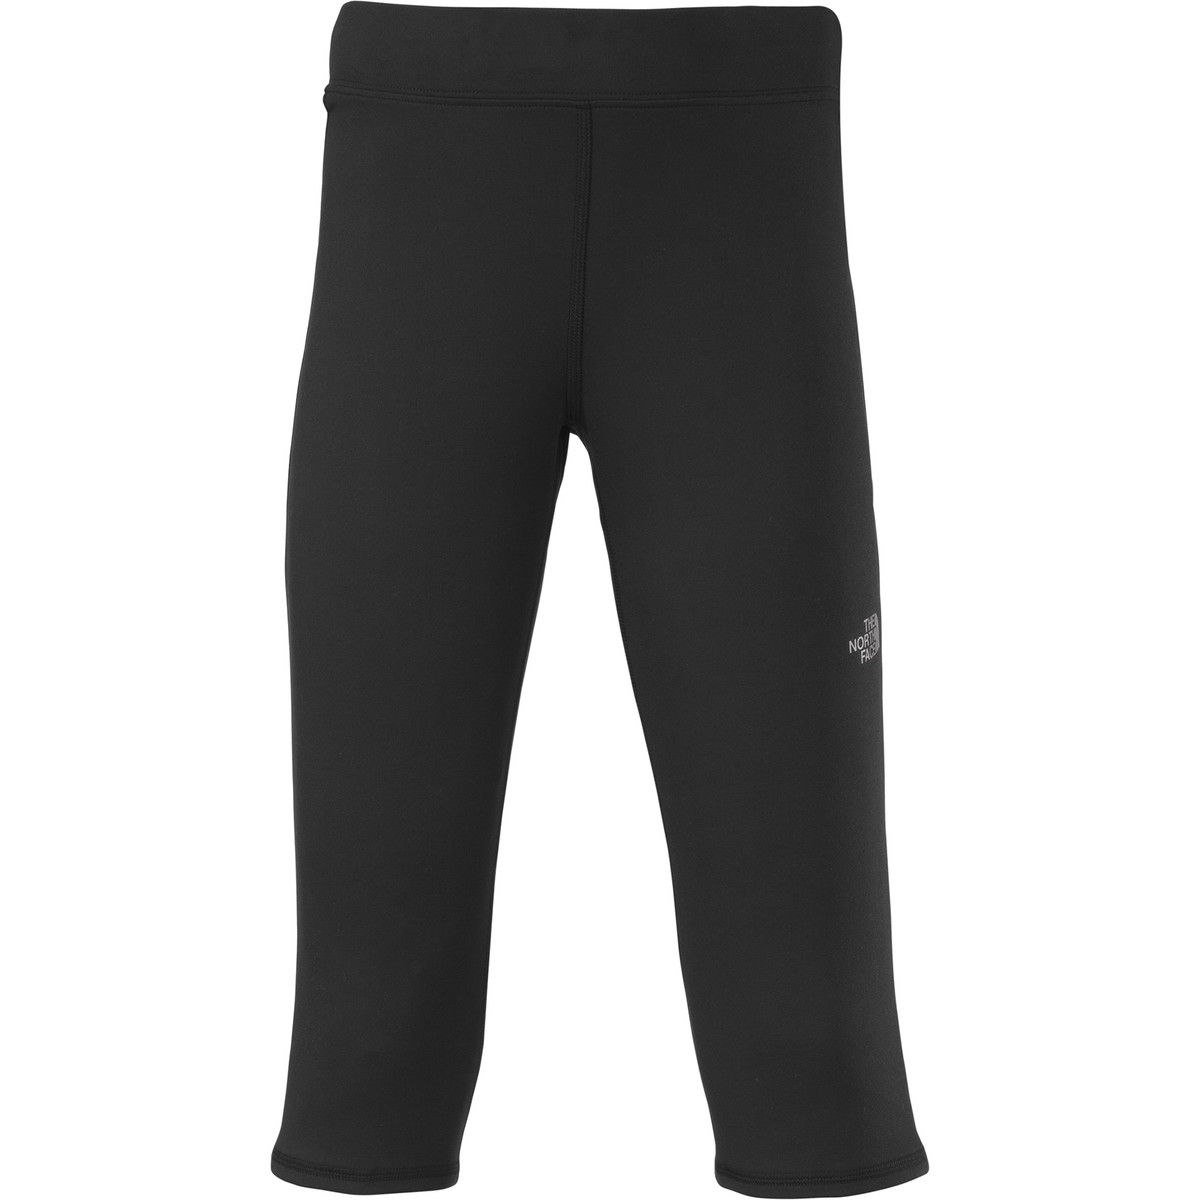 The North Face Moksha Performance Capri